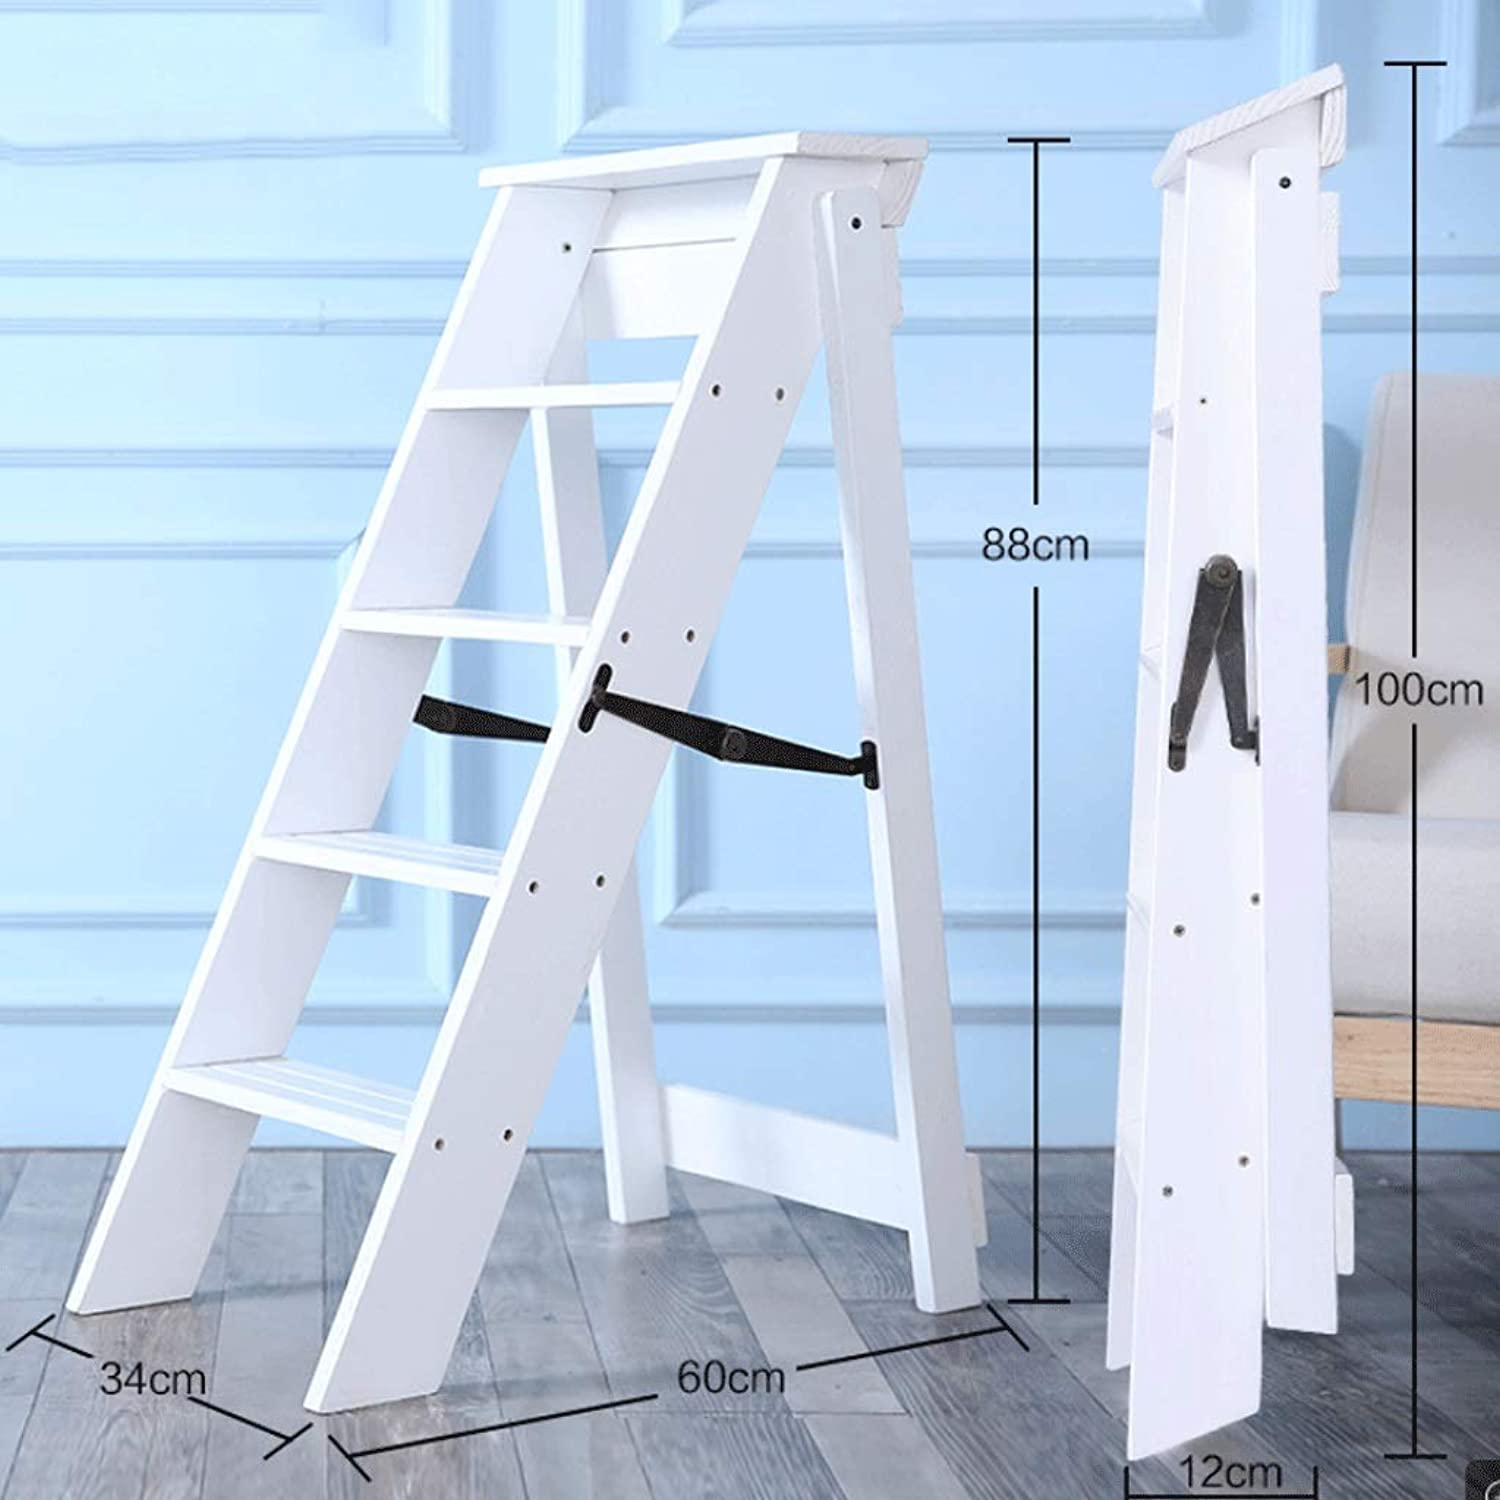 Household Solid Wood Folding Ladder Thickening 5 Step Herringbone Ladder Multifunctional Loft Storage Rack (color   White)